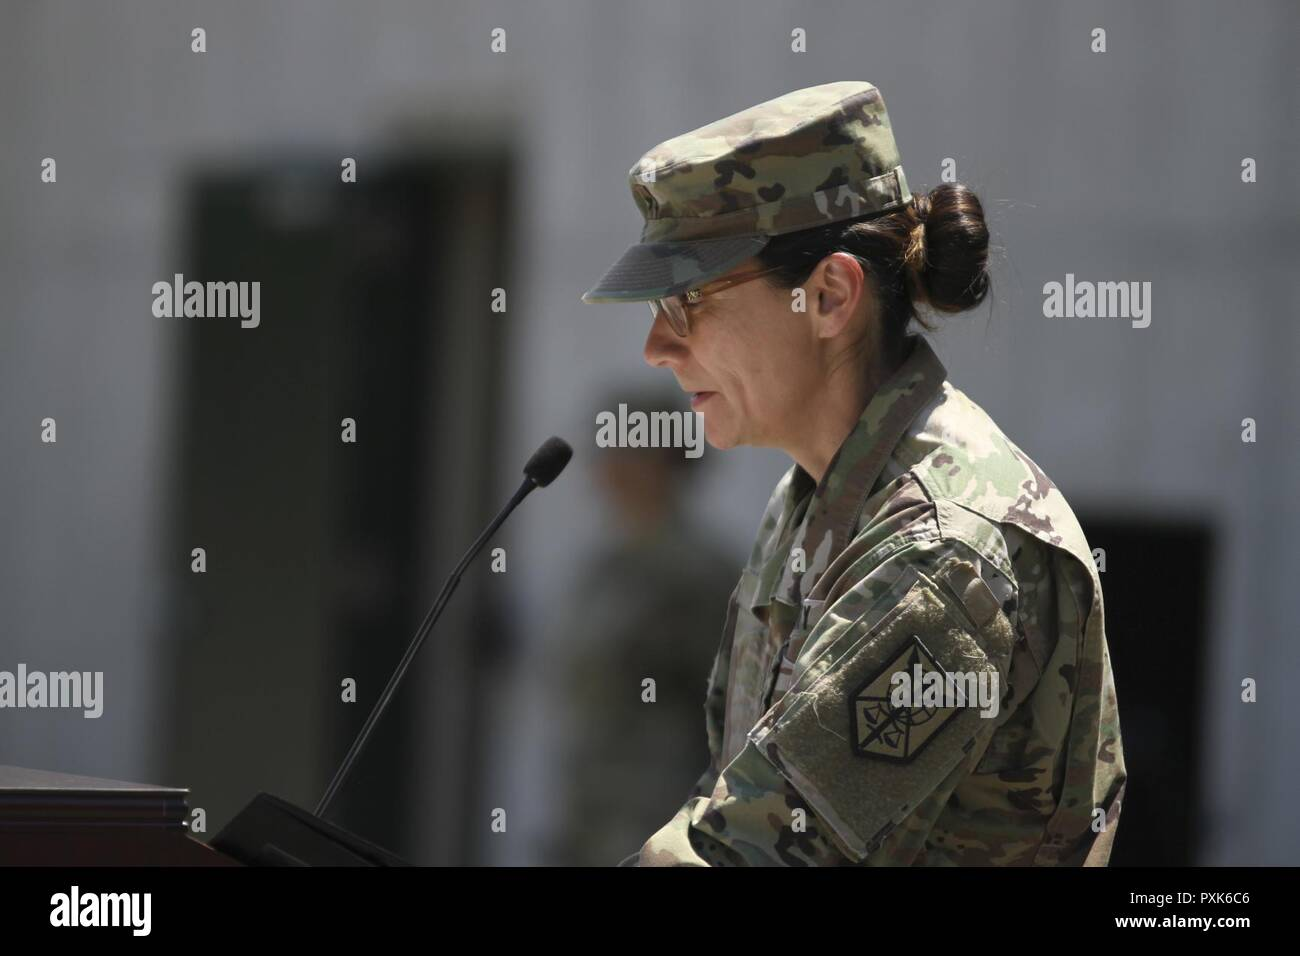 Commander Of The 200th Military Police Command High Resolution Stock Photography And Images Alamy